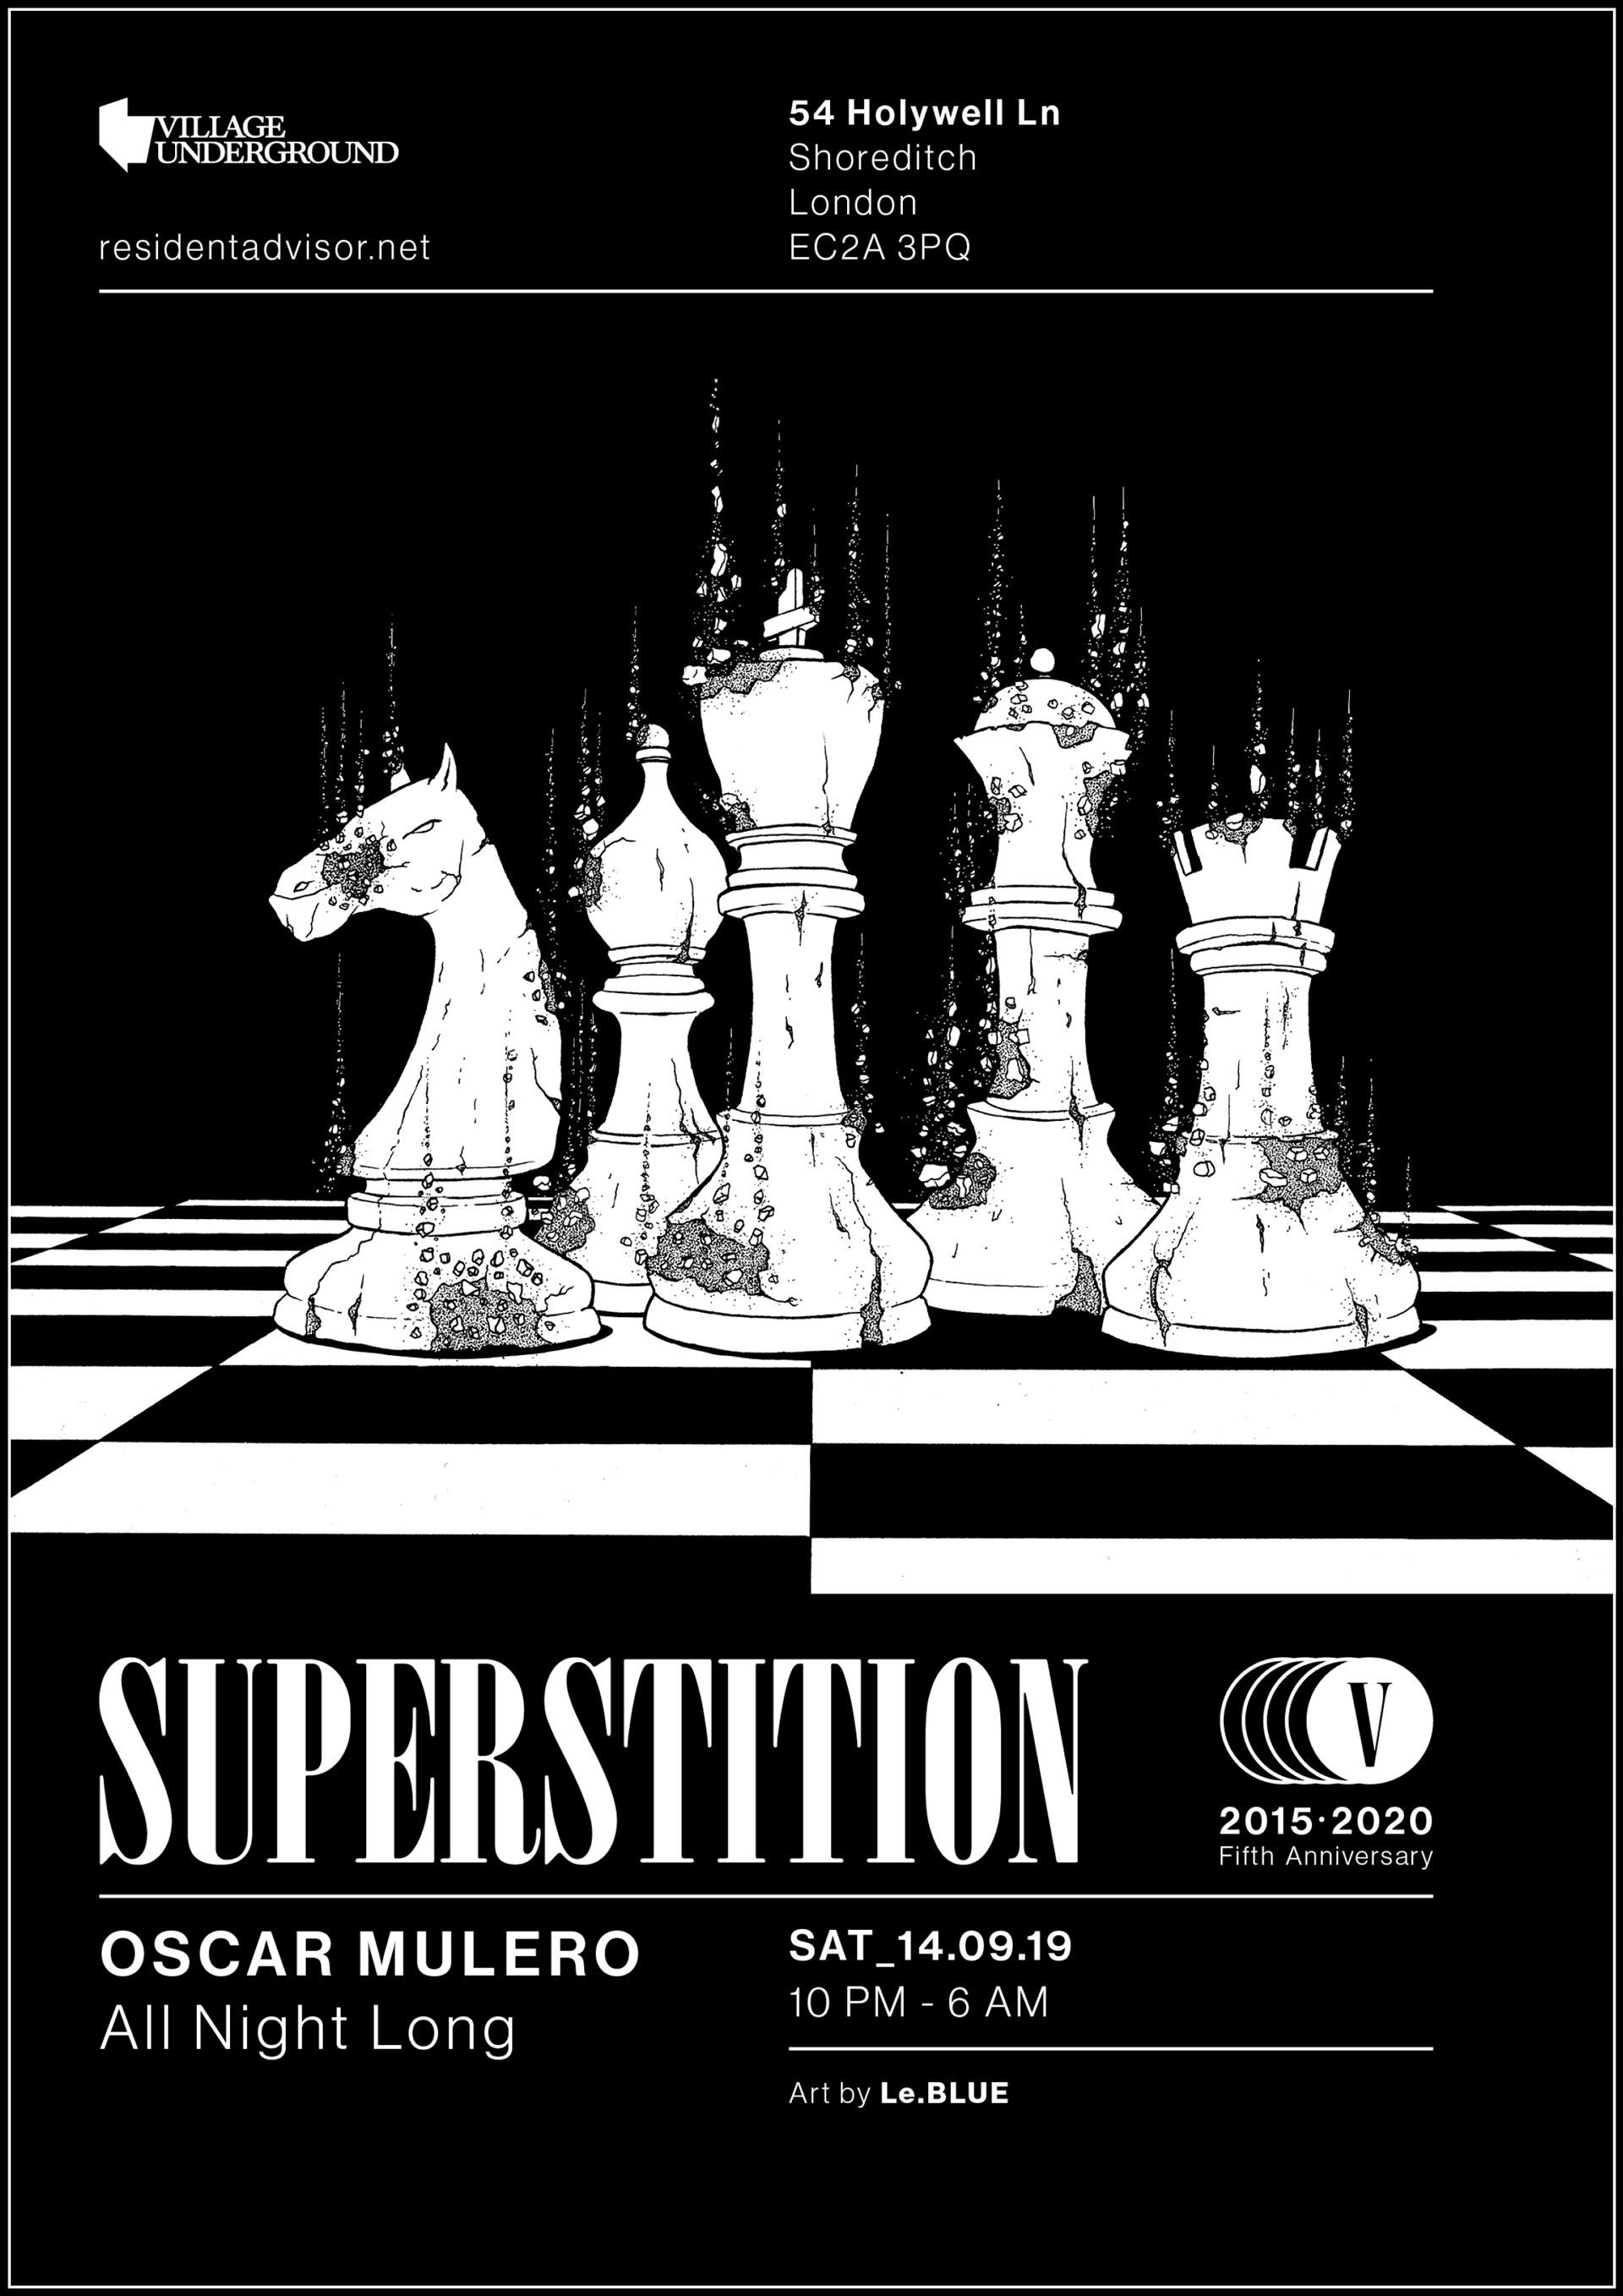 superstition_website3.jpg